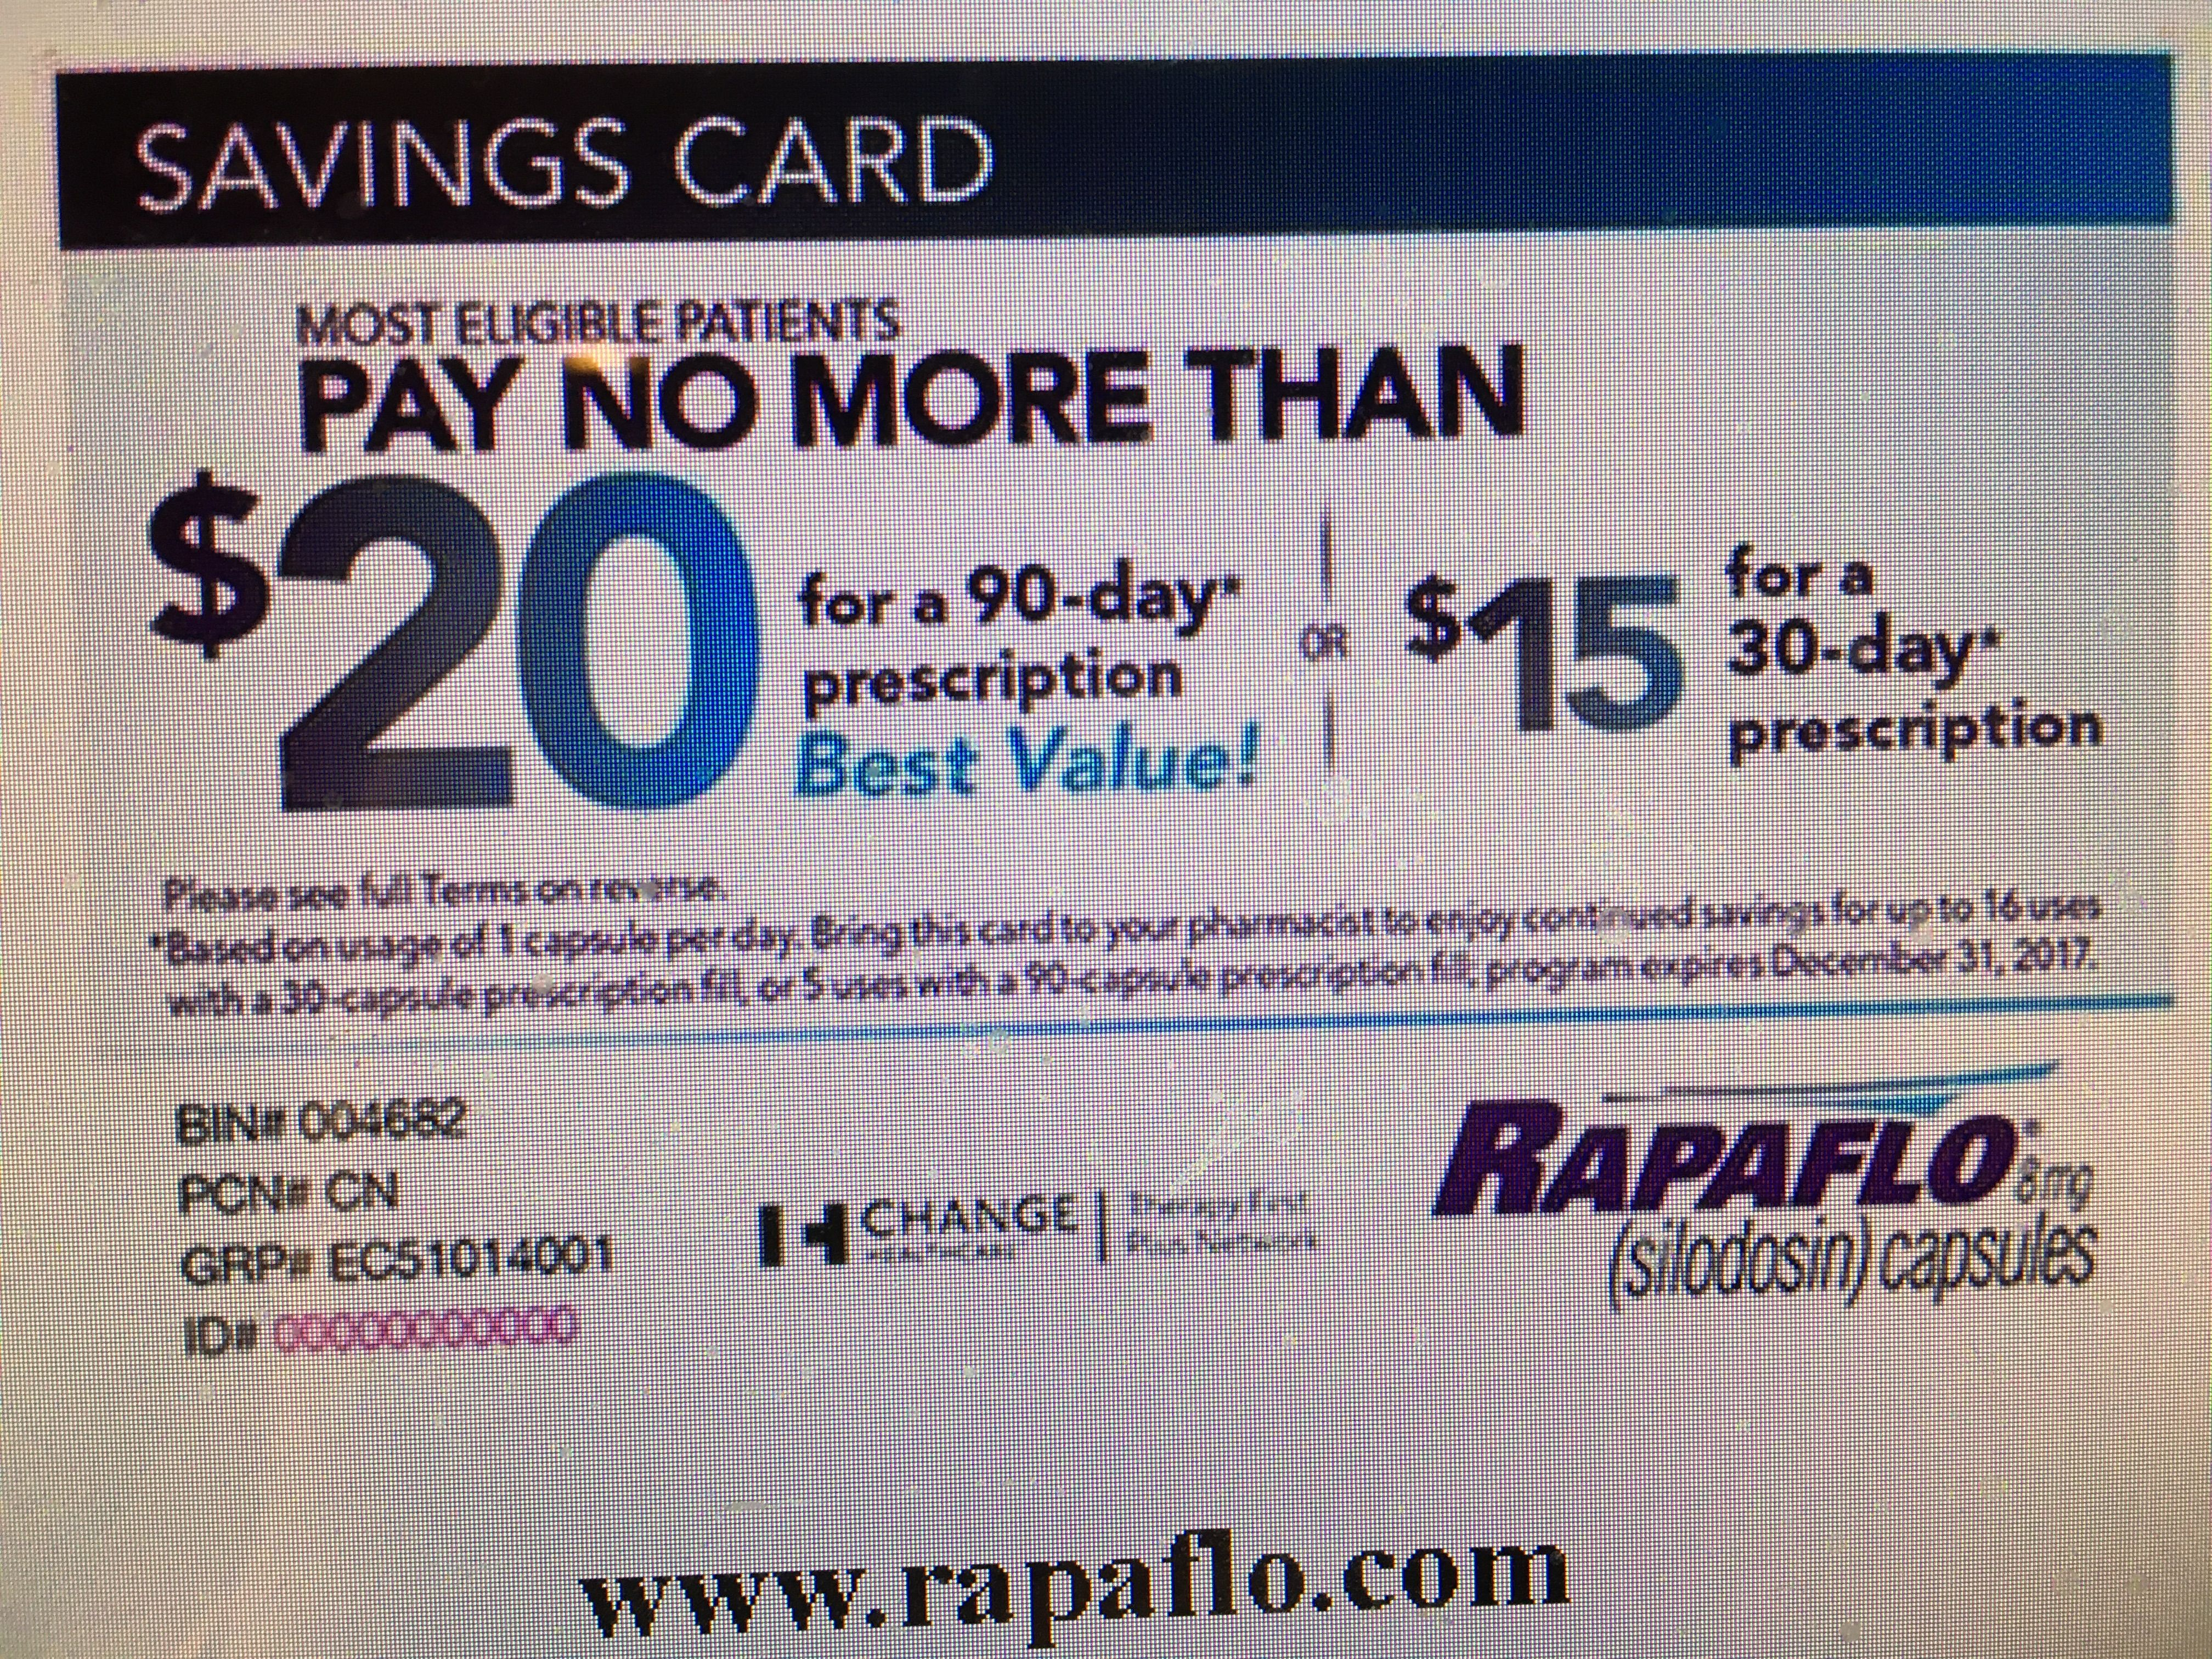 RAPAFLO - pay no more than $15/30 day or $20/90 day prescription. (Limits may apply)